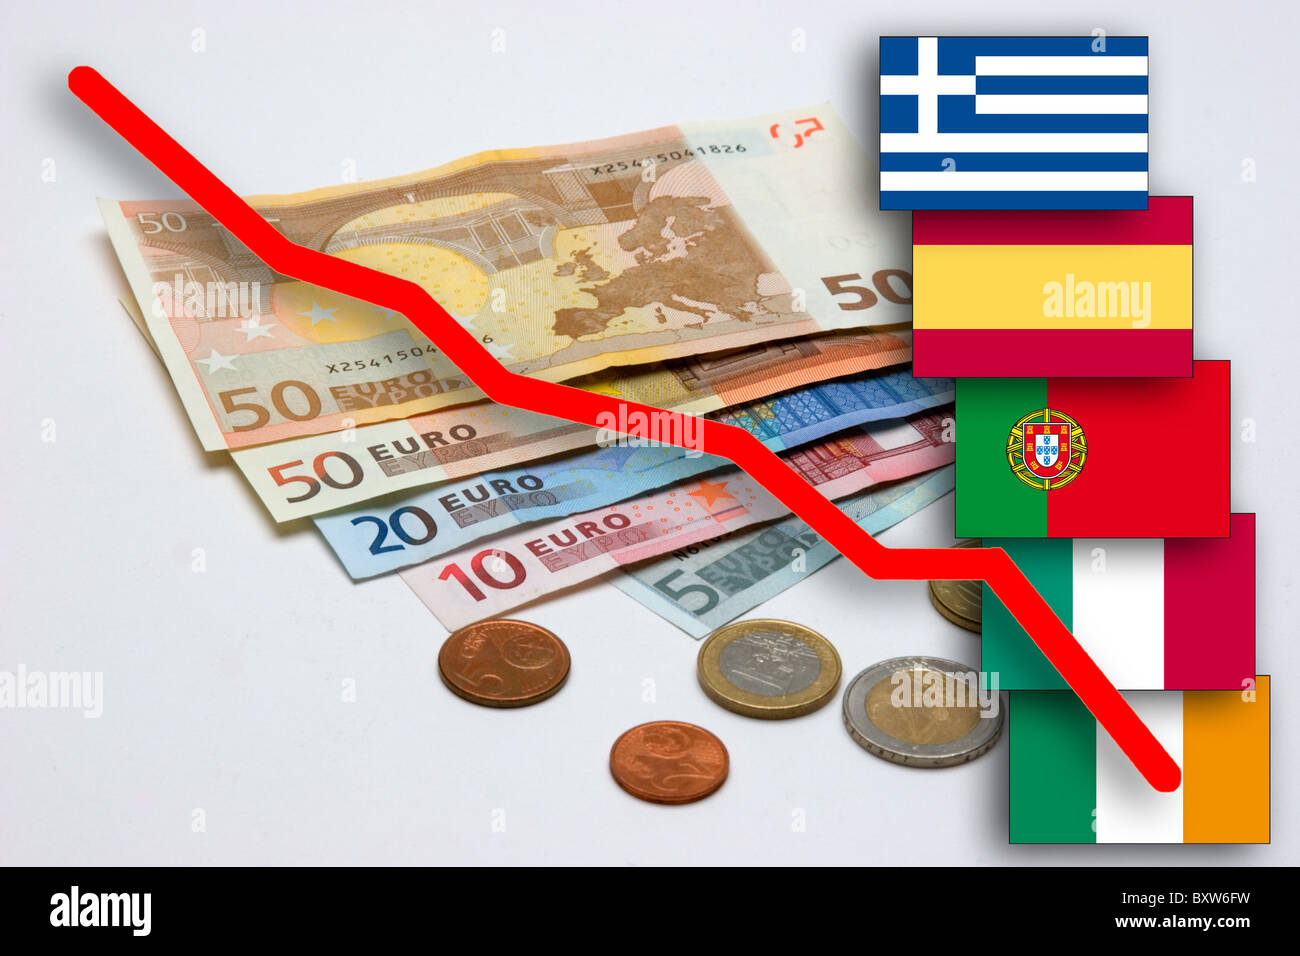 currency crisis of the EUR symbol picture for the loss in value of the Euro with flags of the so called pigs states - Stock Image